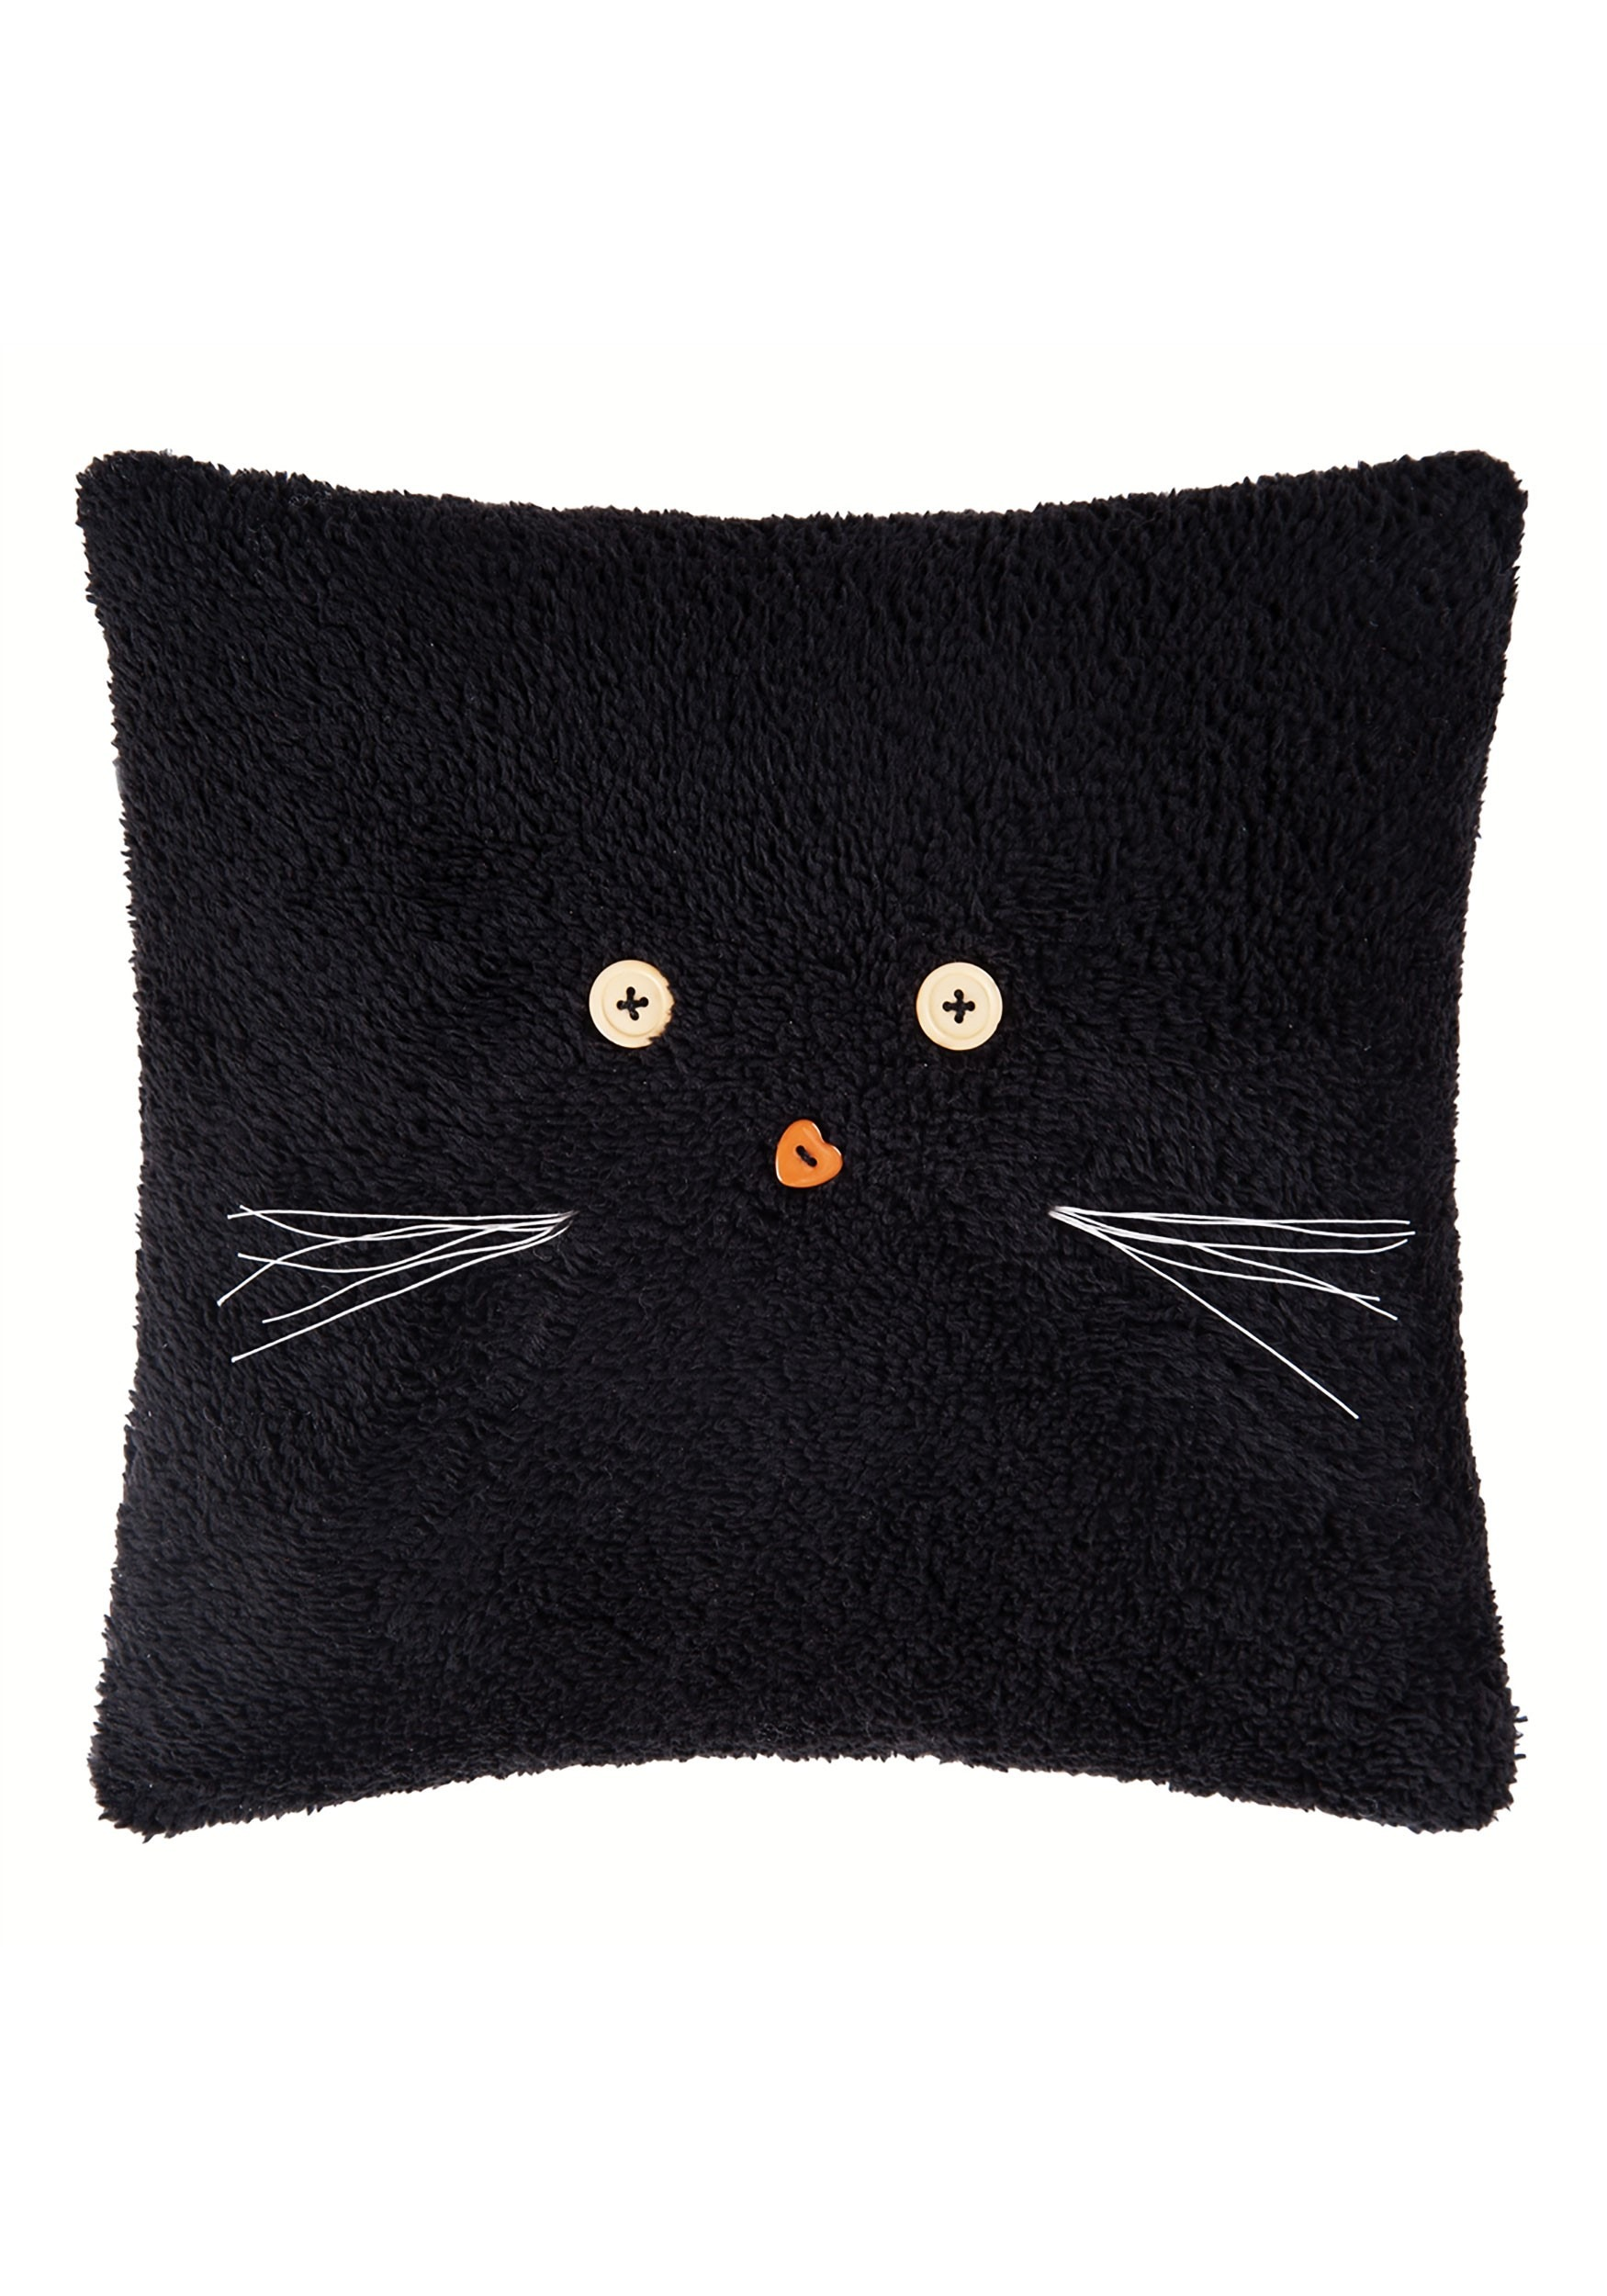 Black Cat Halloween Decor Pillow